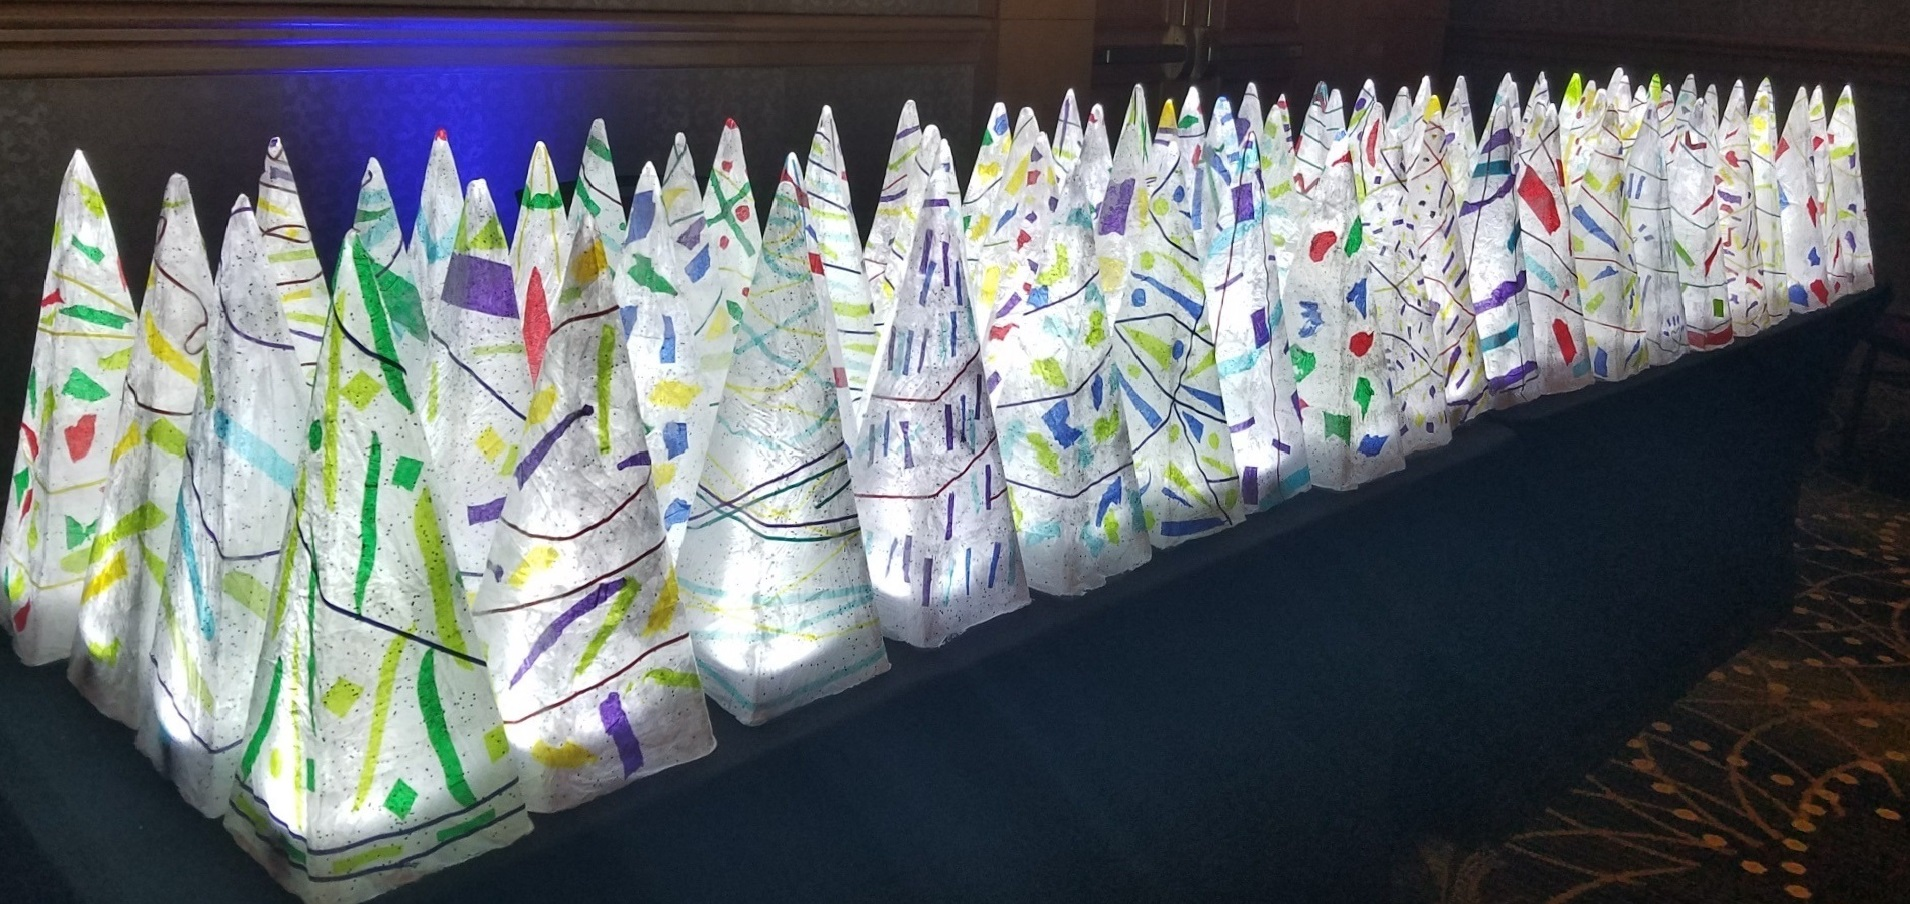 Women incarcerated at the Montgomery County Correctional Facility created more than 100 papier-mâché and ribbon centerpieces in the jail's workroom for the Montgomery County Executive's Ball for the Arts & Humanities. Caren Quiroga was the lead artist.